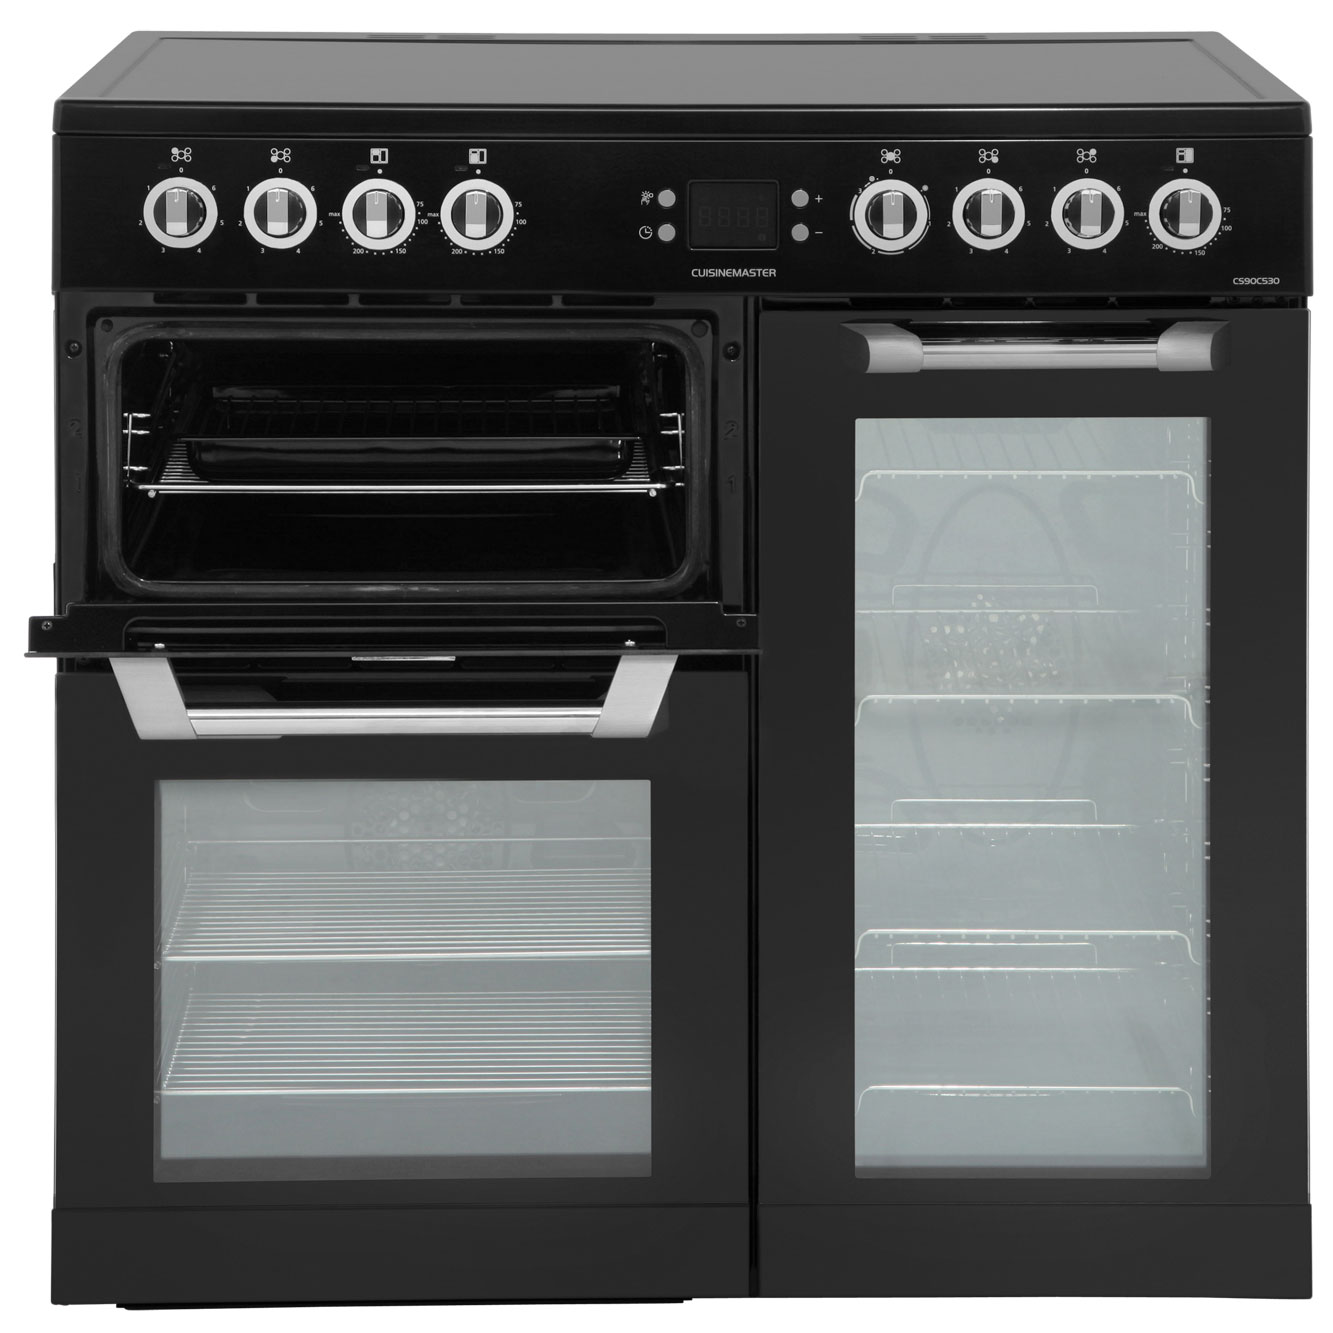 Leisure Cuisinemaster Cs90c530k Electric Range Cooker Black